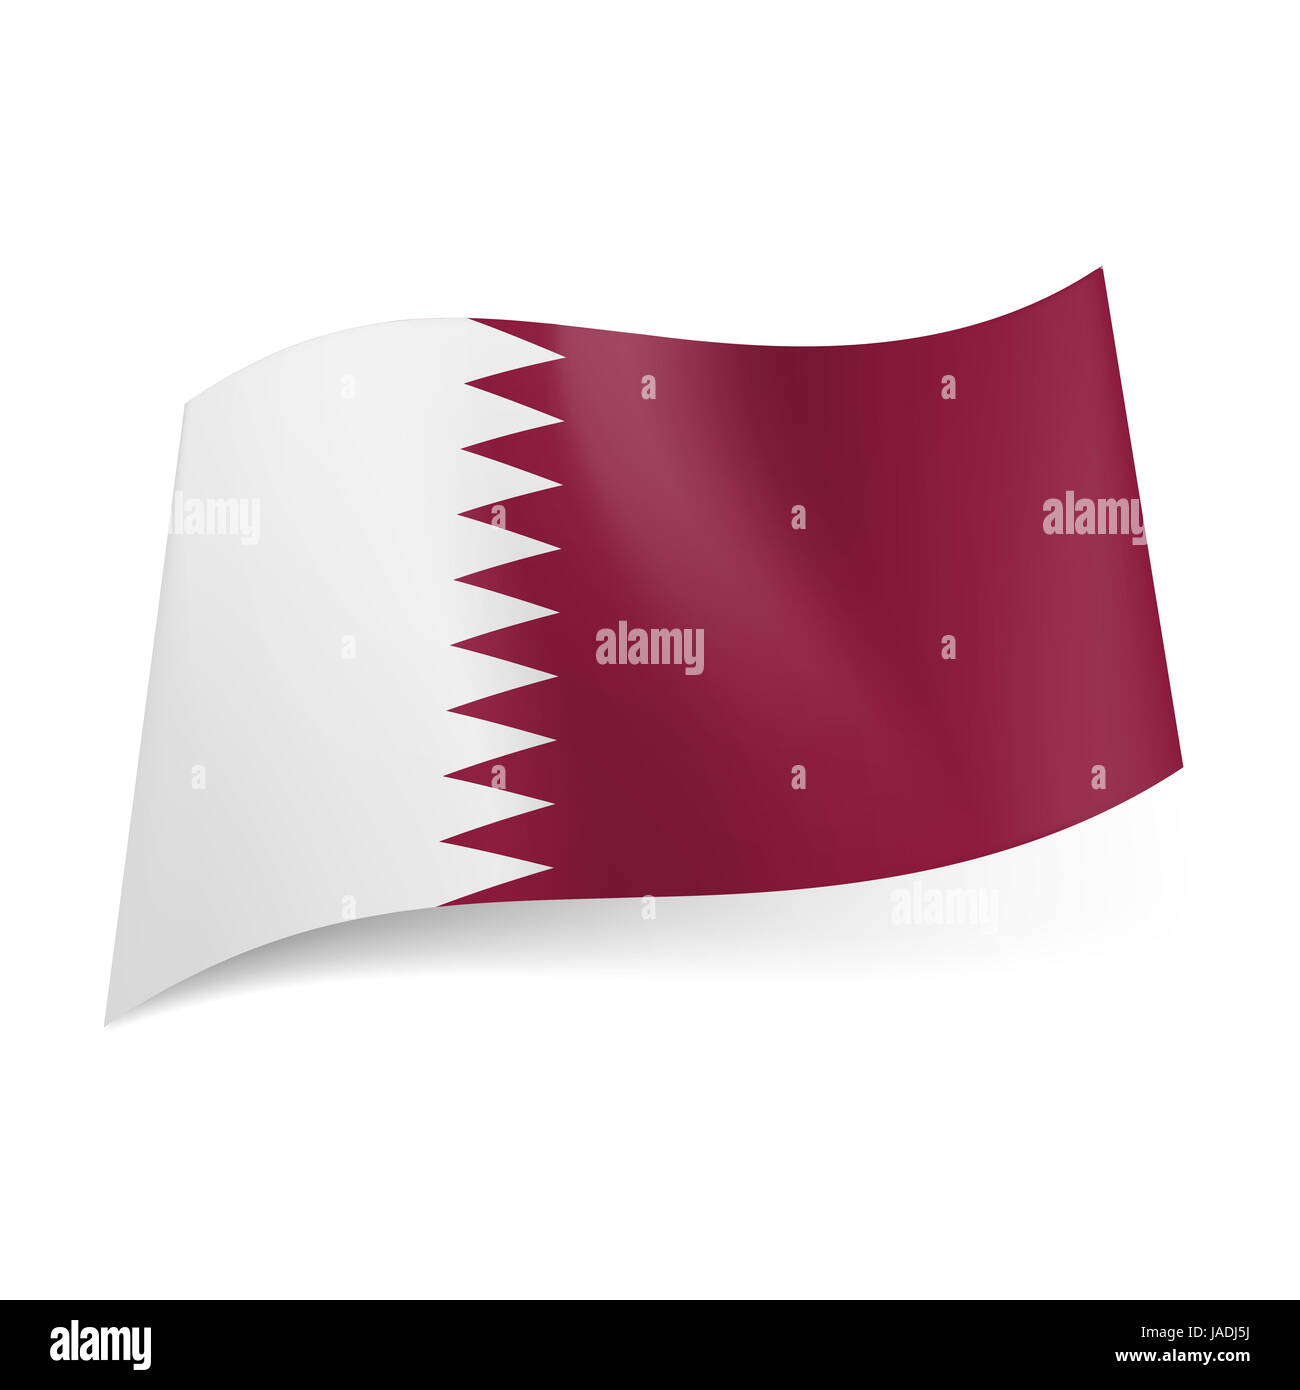 National flag of Qatar: white and maroon bands with serrated pattern. - Stock Image